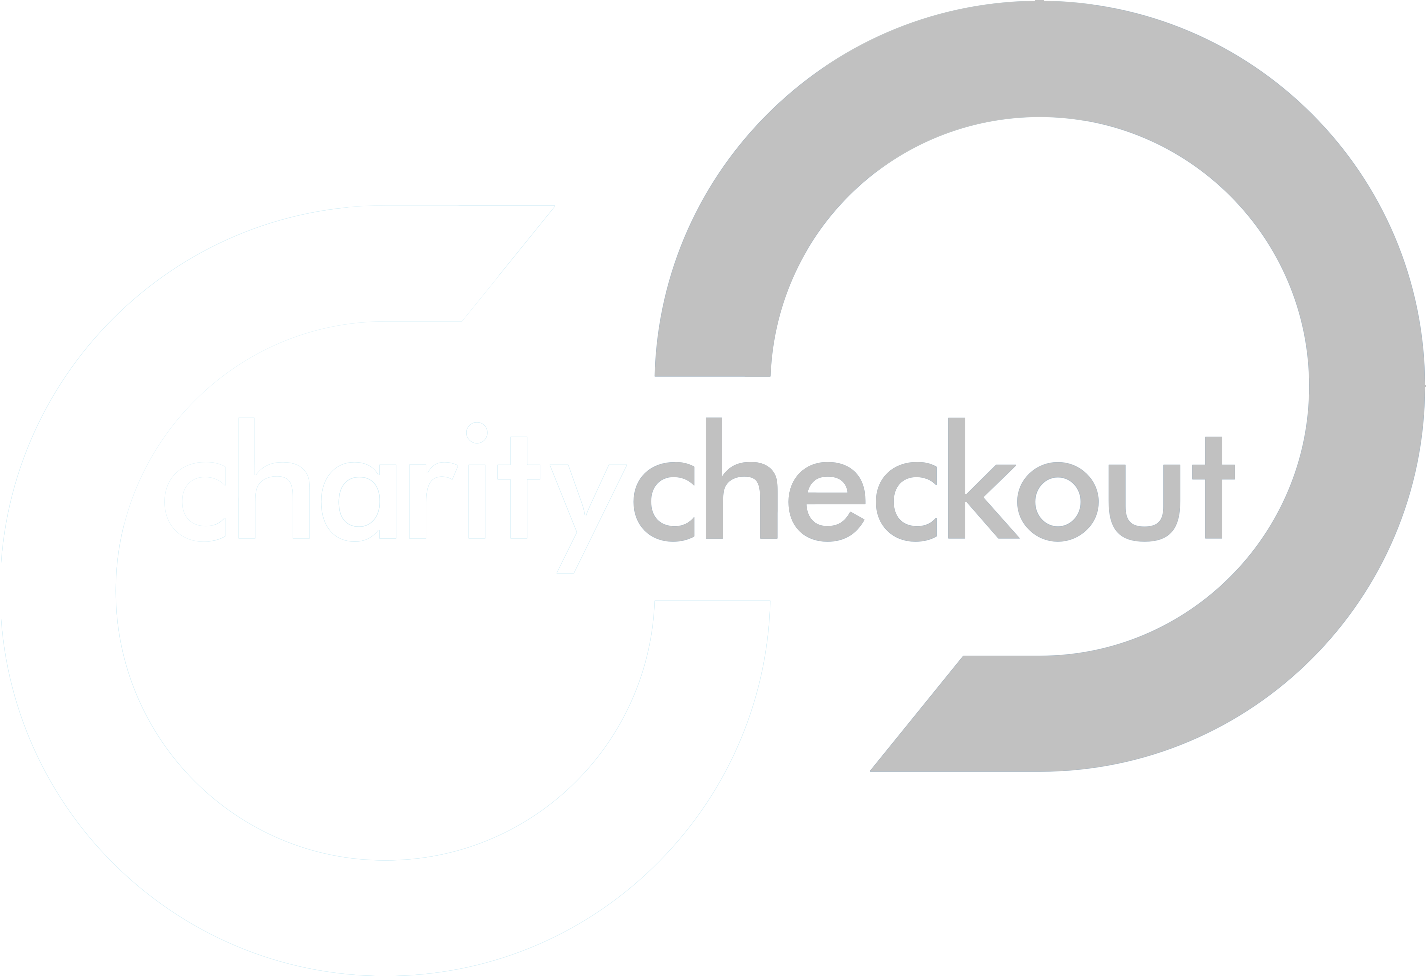 Every Well Charity